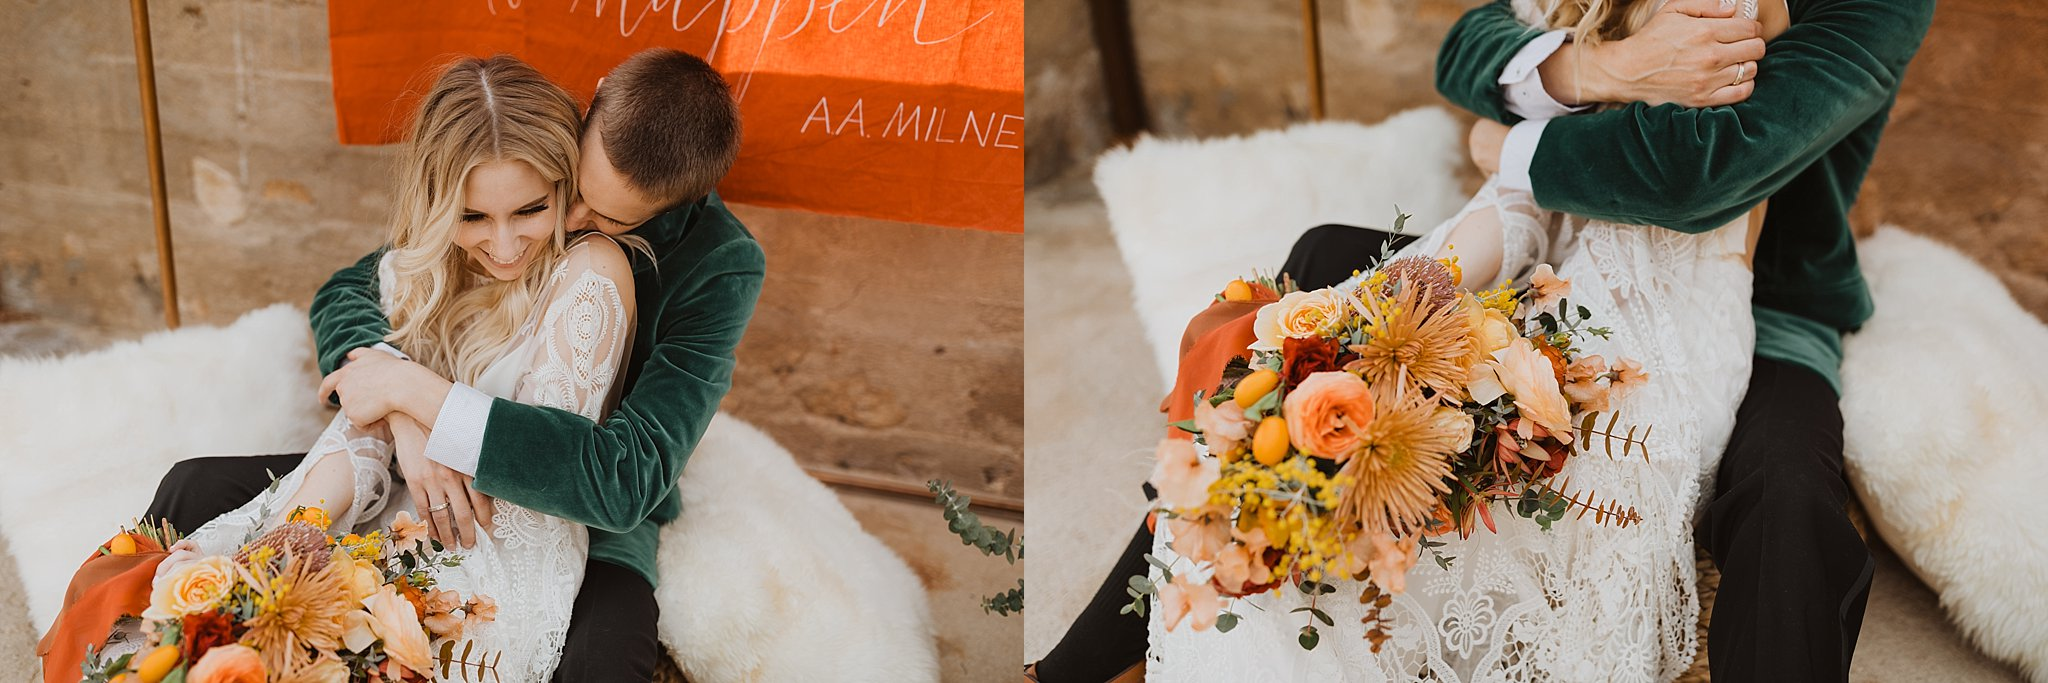 Meg's Marvels Photography - Joshua Tree Elopement California Wedding_0180.jpg